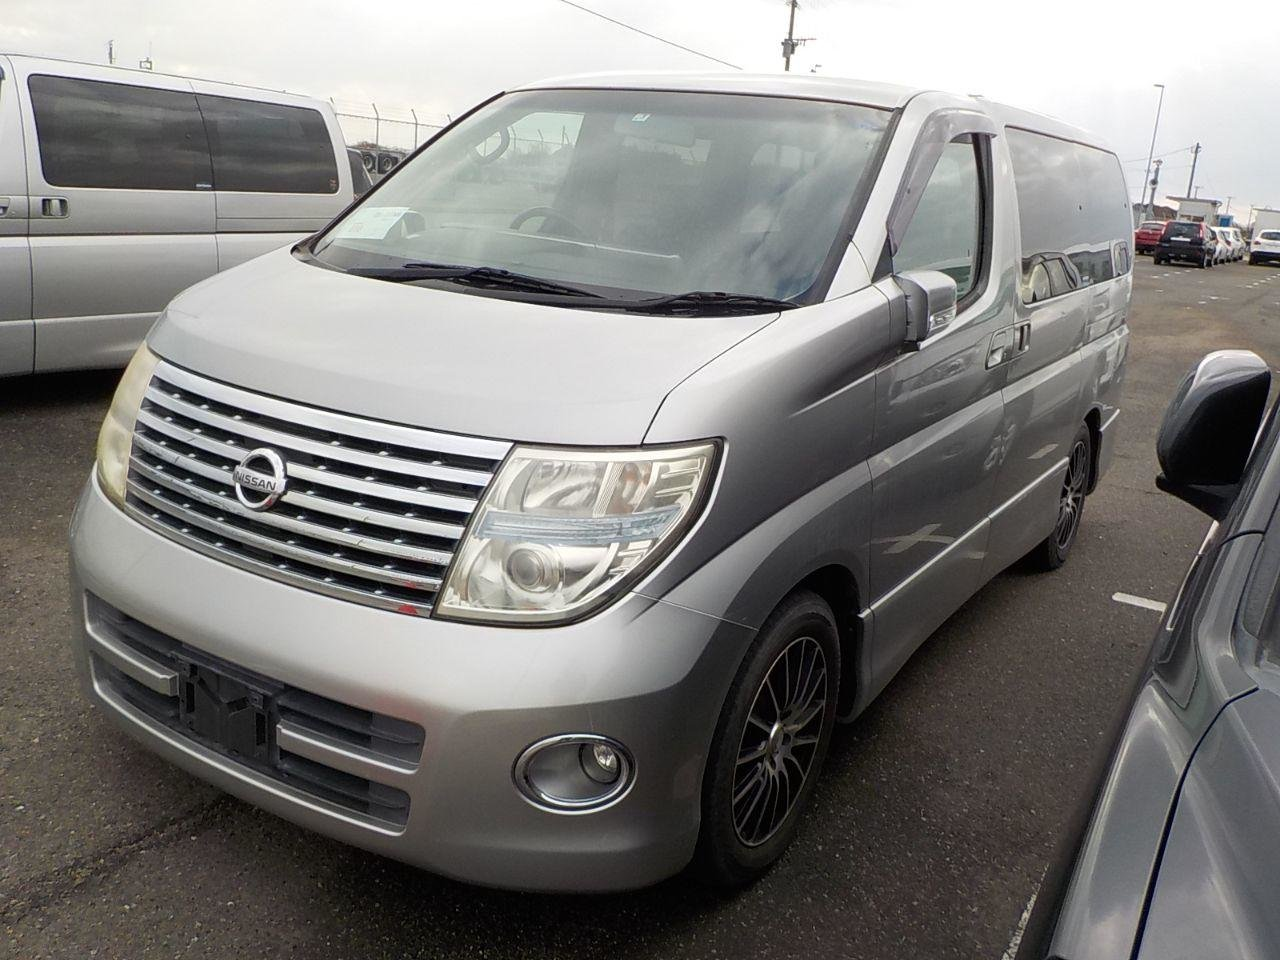 2005 Nissan Elgrand 3.5 Highway Star E51 For Sale (picture 2 of 5)